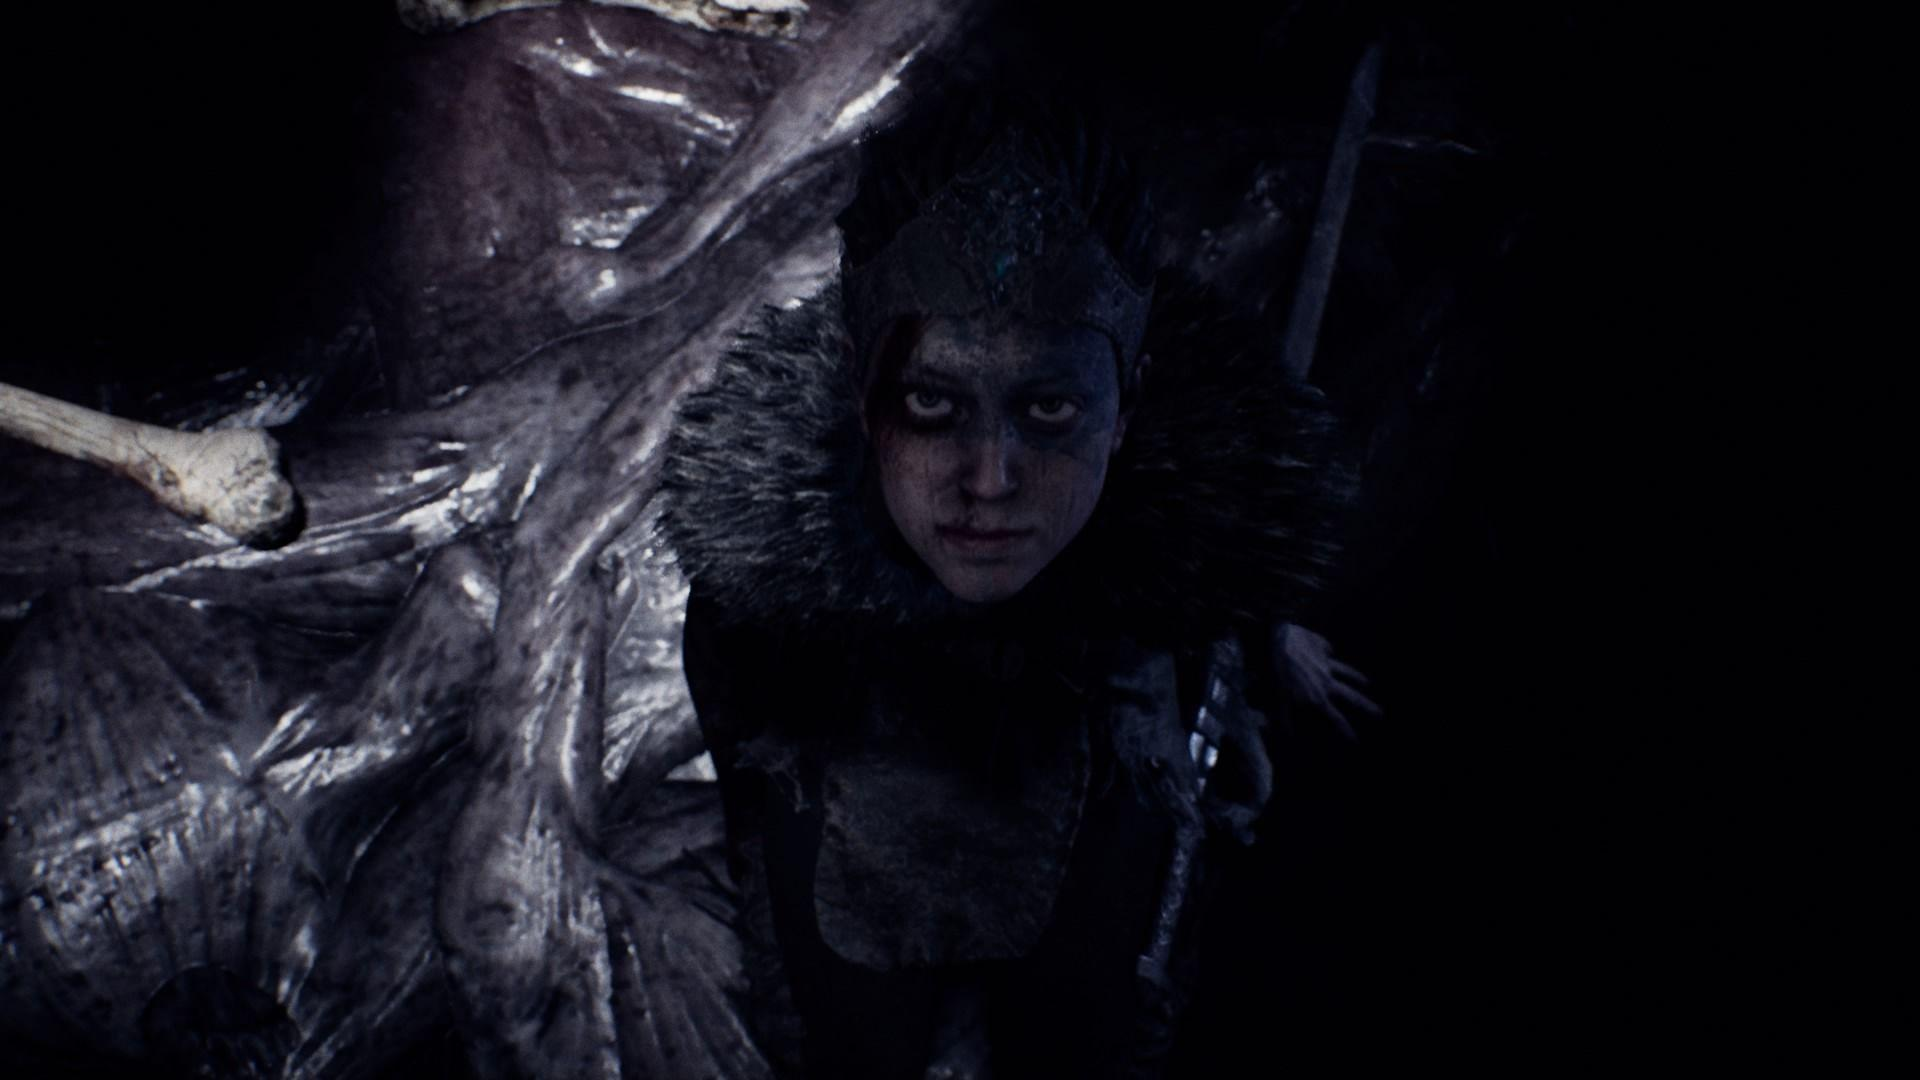 Hellblade: Senua's Sacrifice Game Pictures